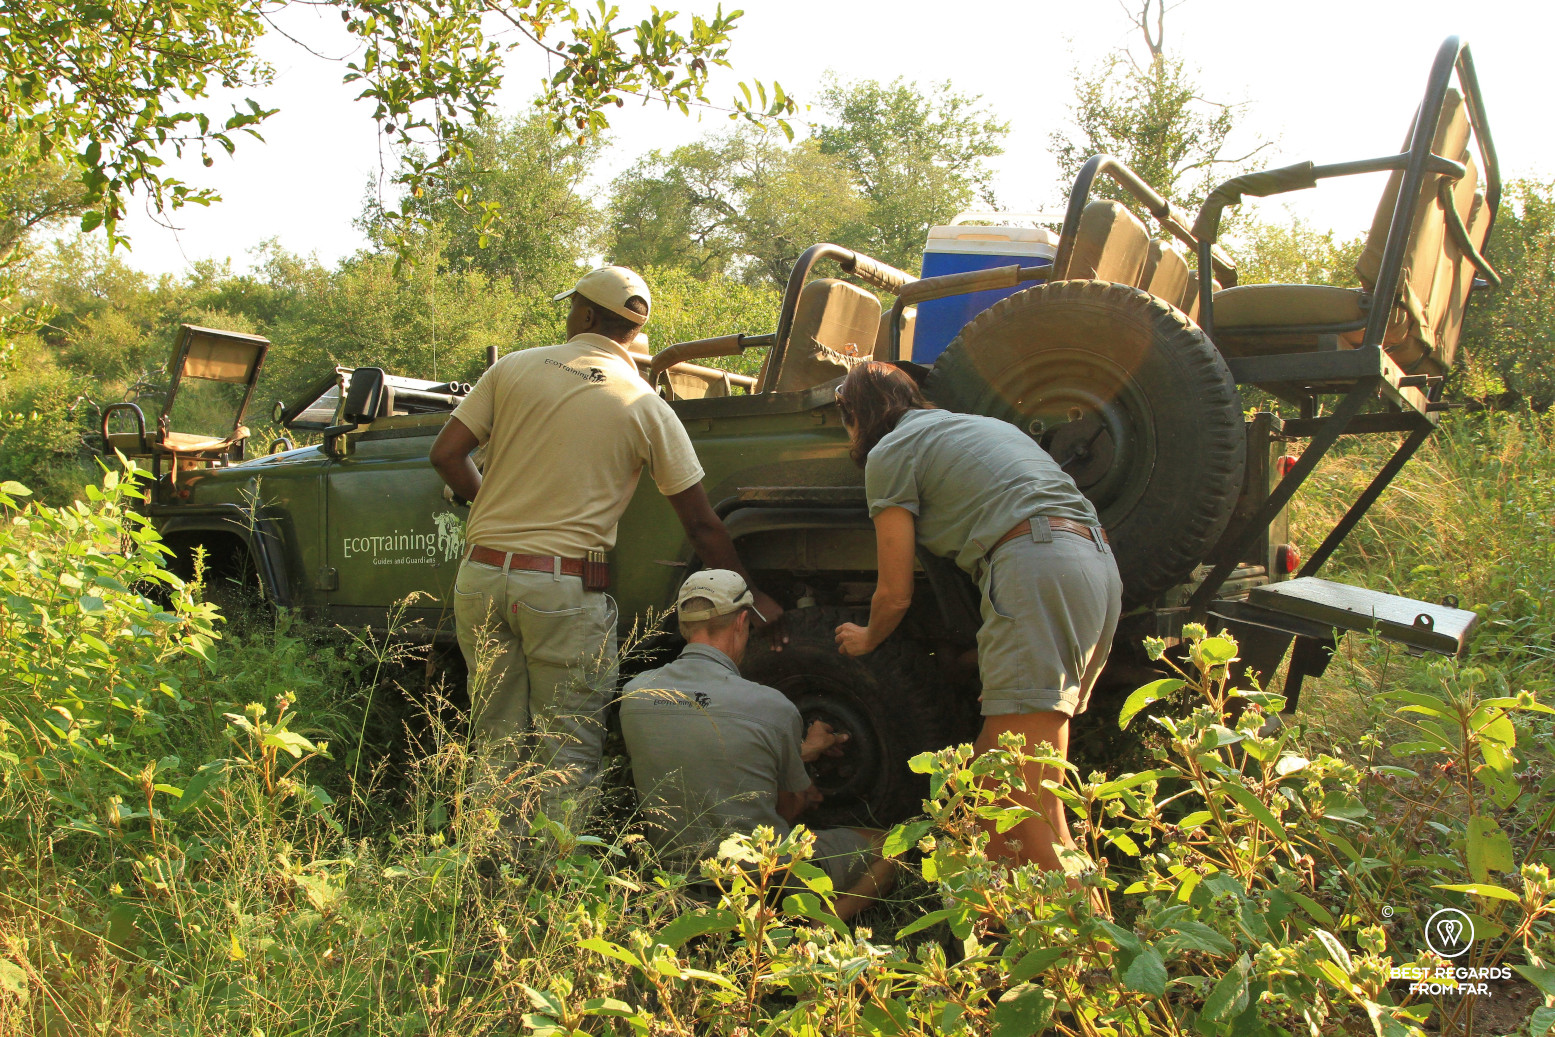 3 EcoTraining instructors changing a tyre of the Land Rover in the bush while checking on lions